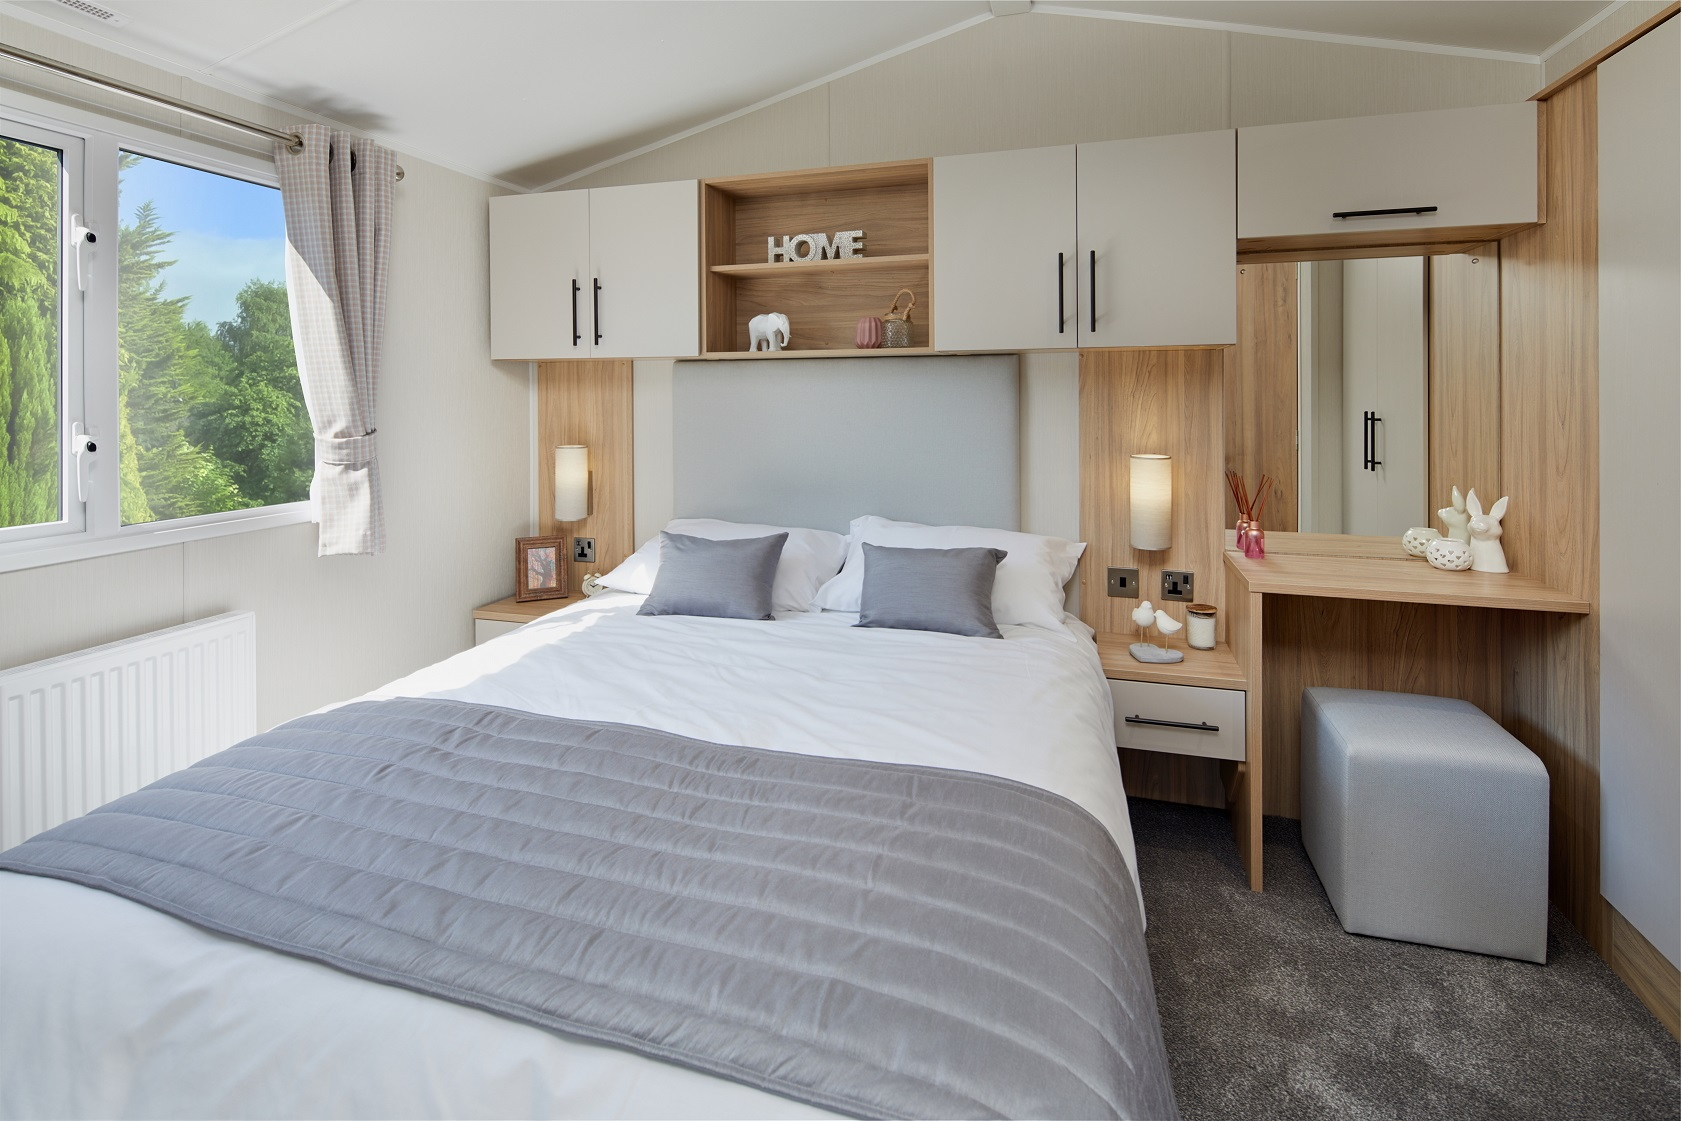 Willerby Manor: New Static Caravans and Holiday Homes for Sale, On Order Large Image 4